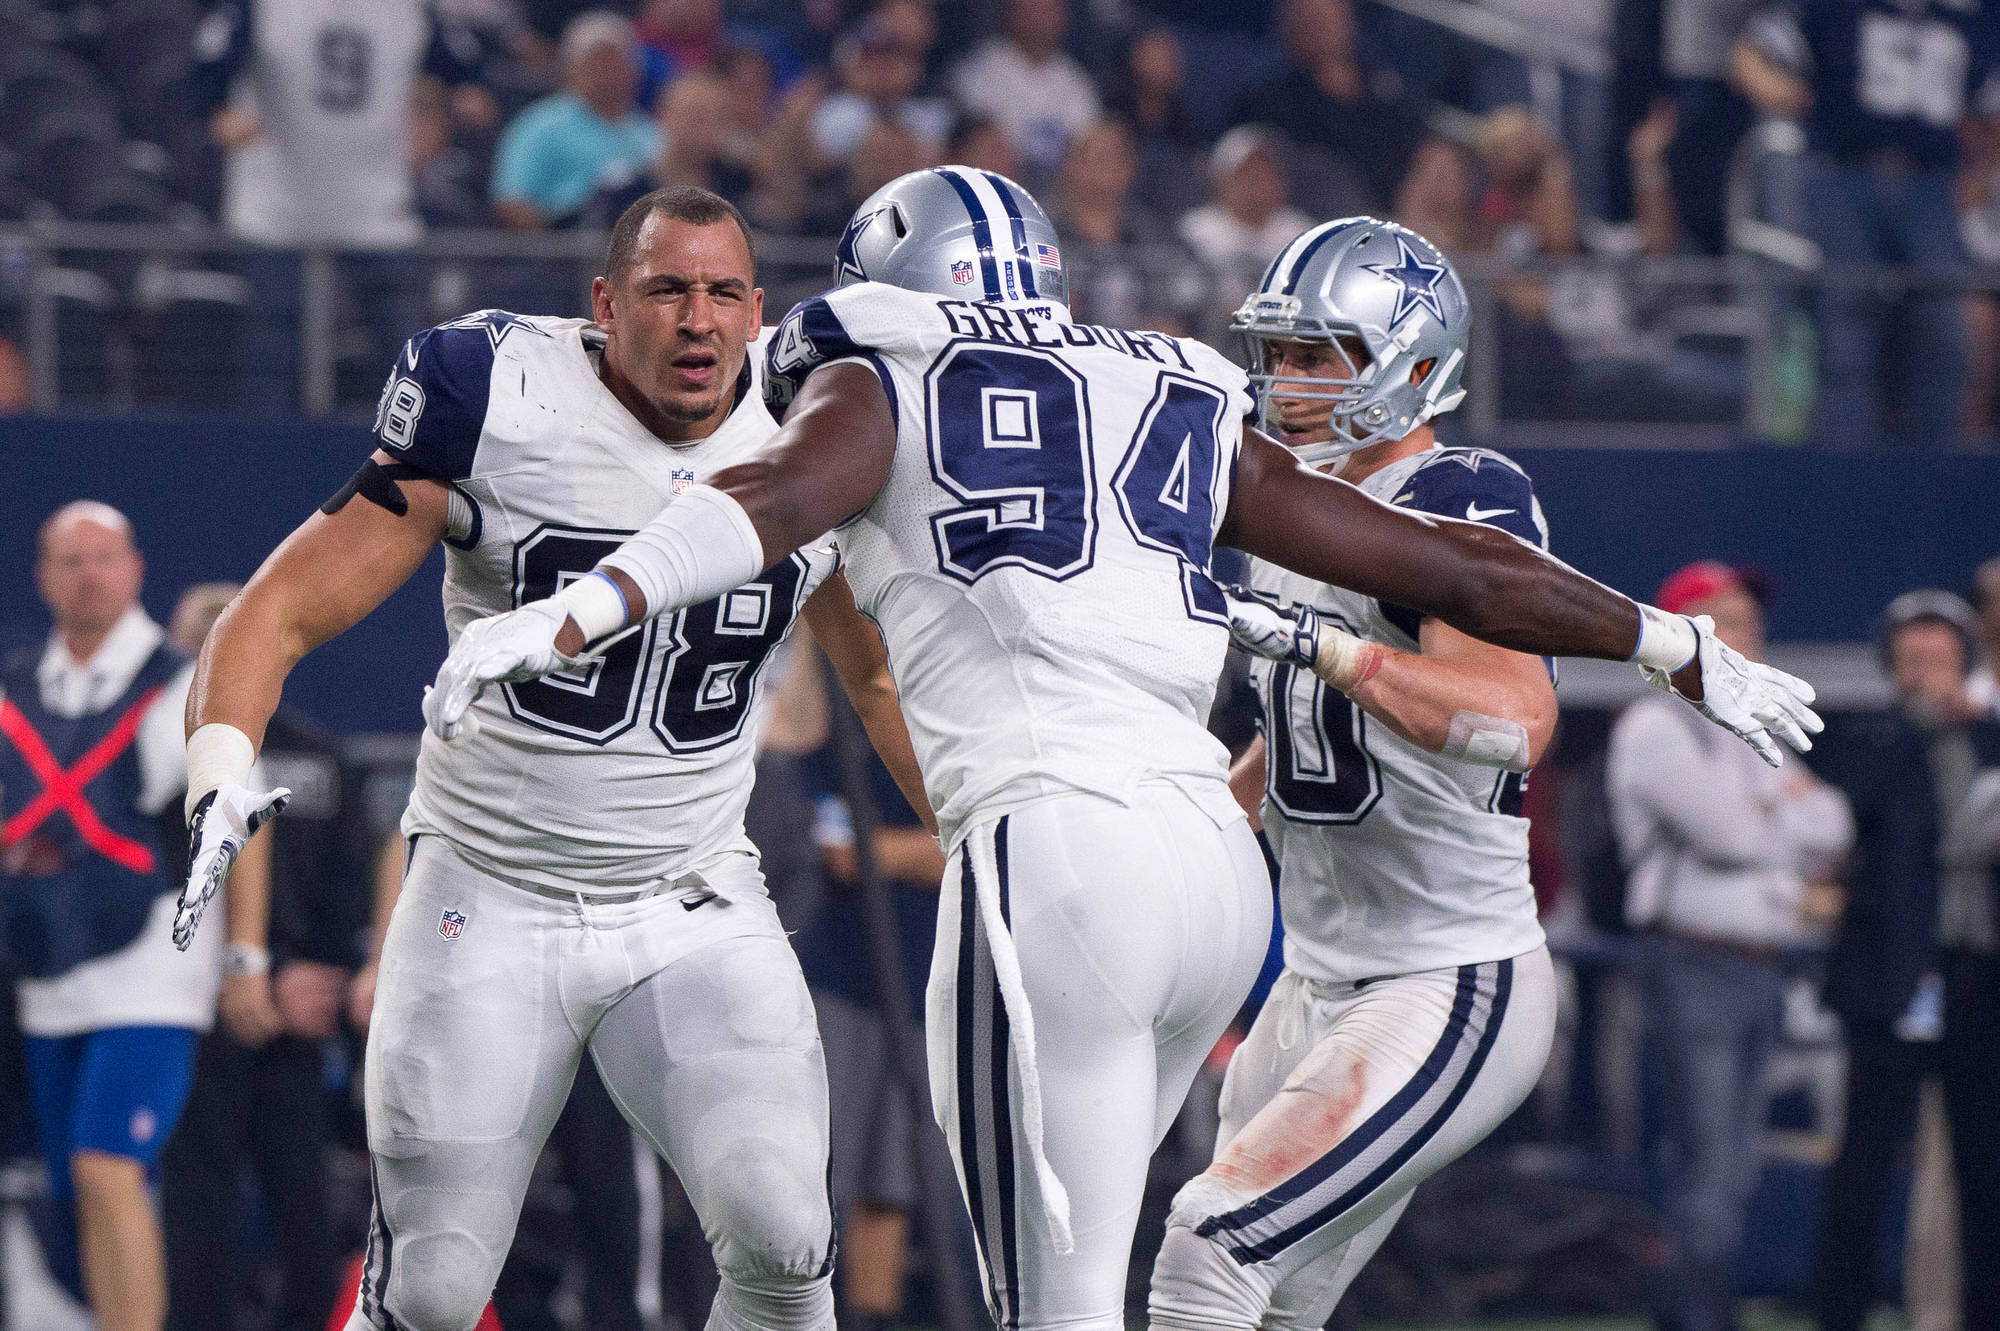 Cowboys Rumors: Terrell McClain to Visit Dallas amid 49ers, Dolphins Interest